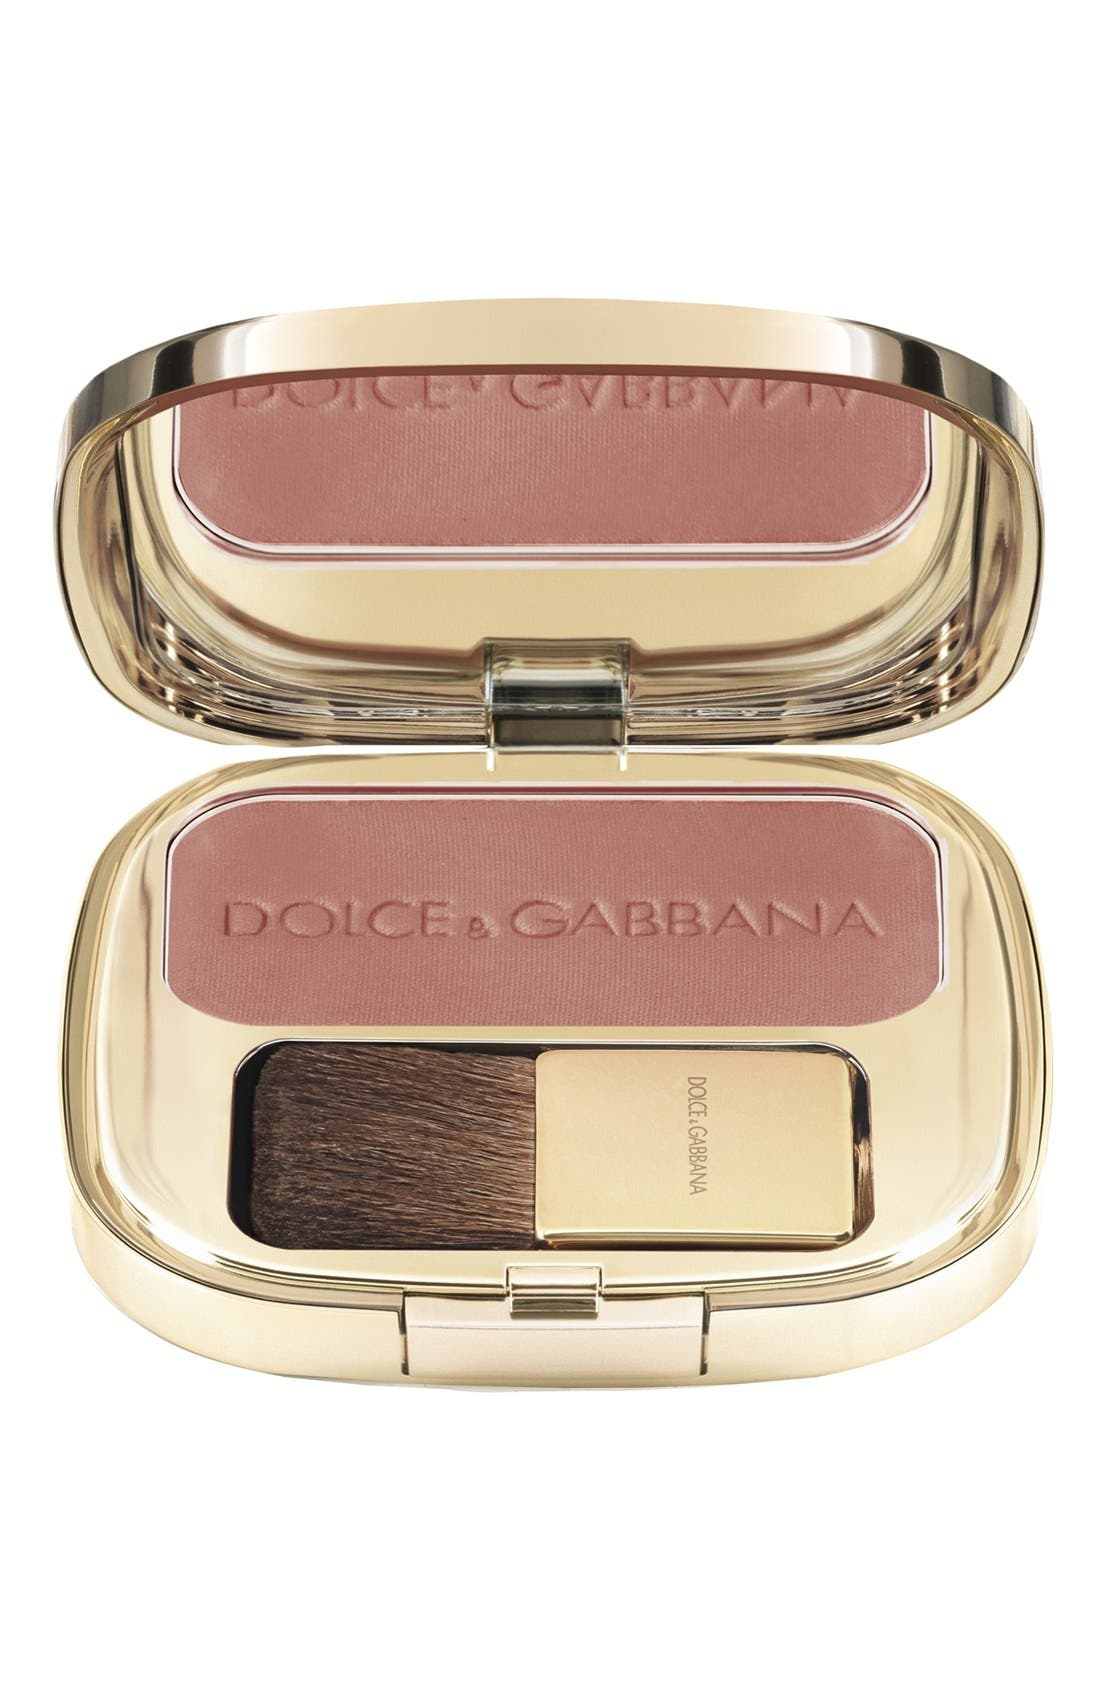 Dolce&Gabbana Beauty Luminous Cheek Color Blush